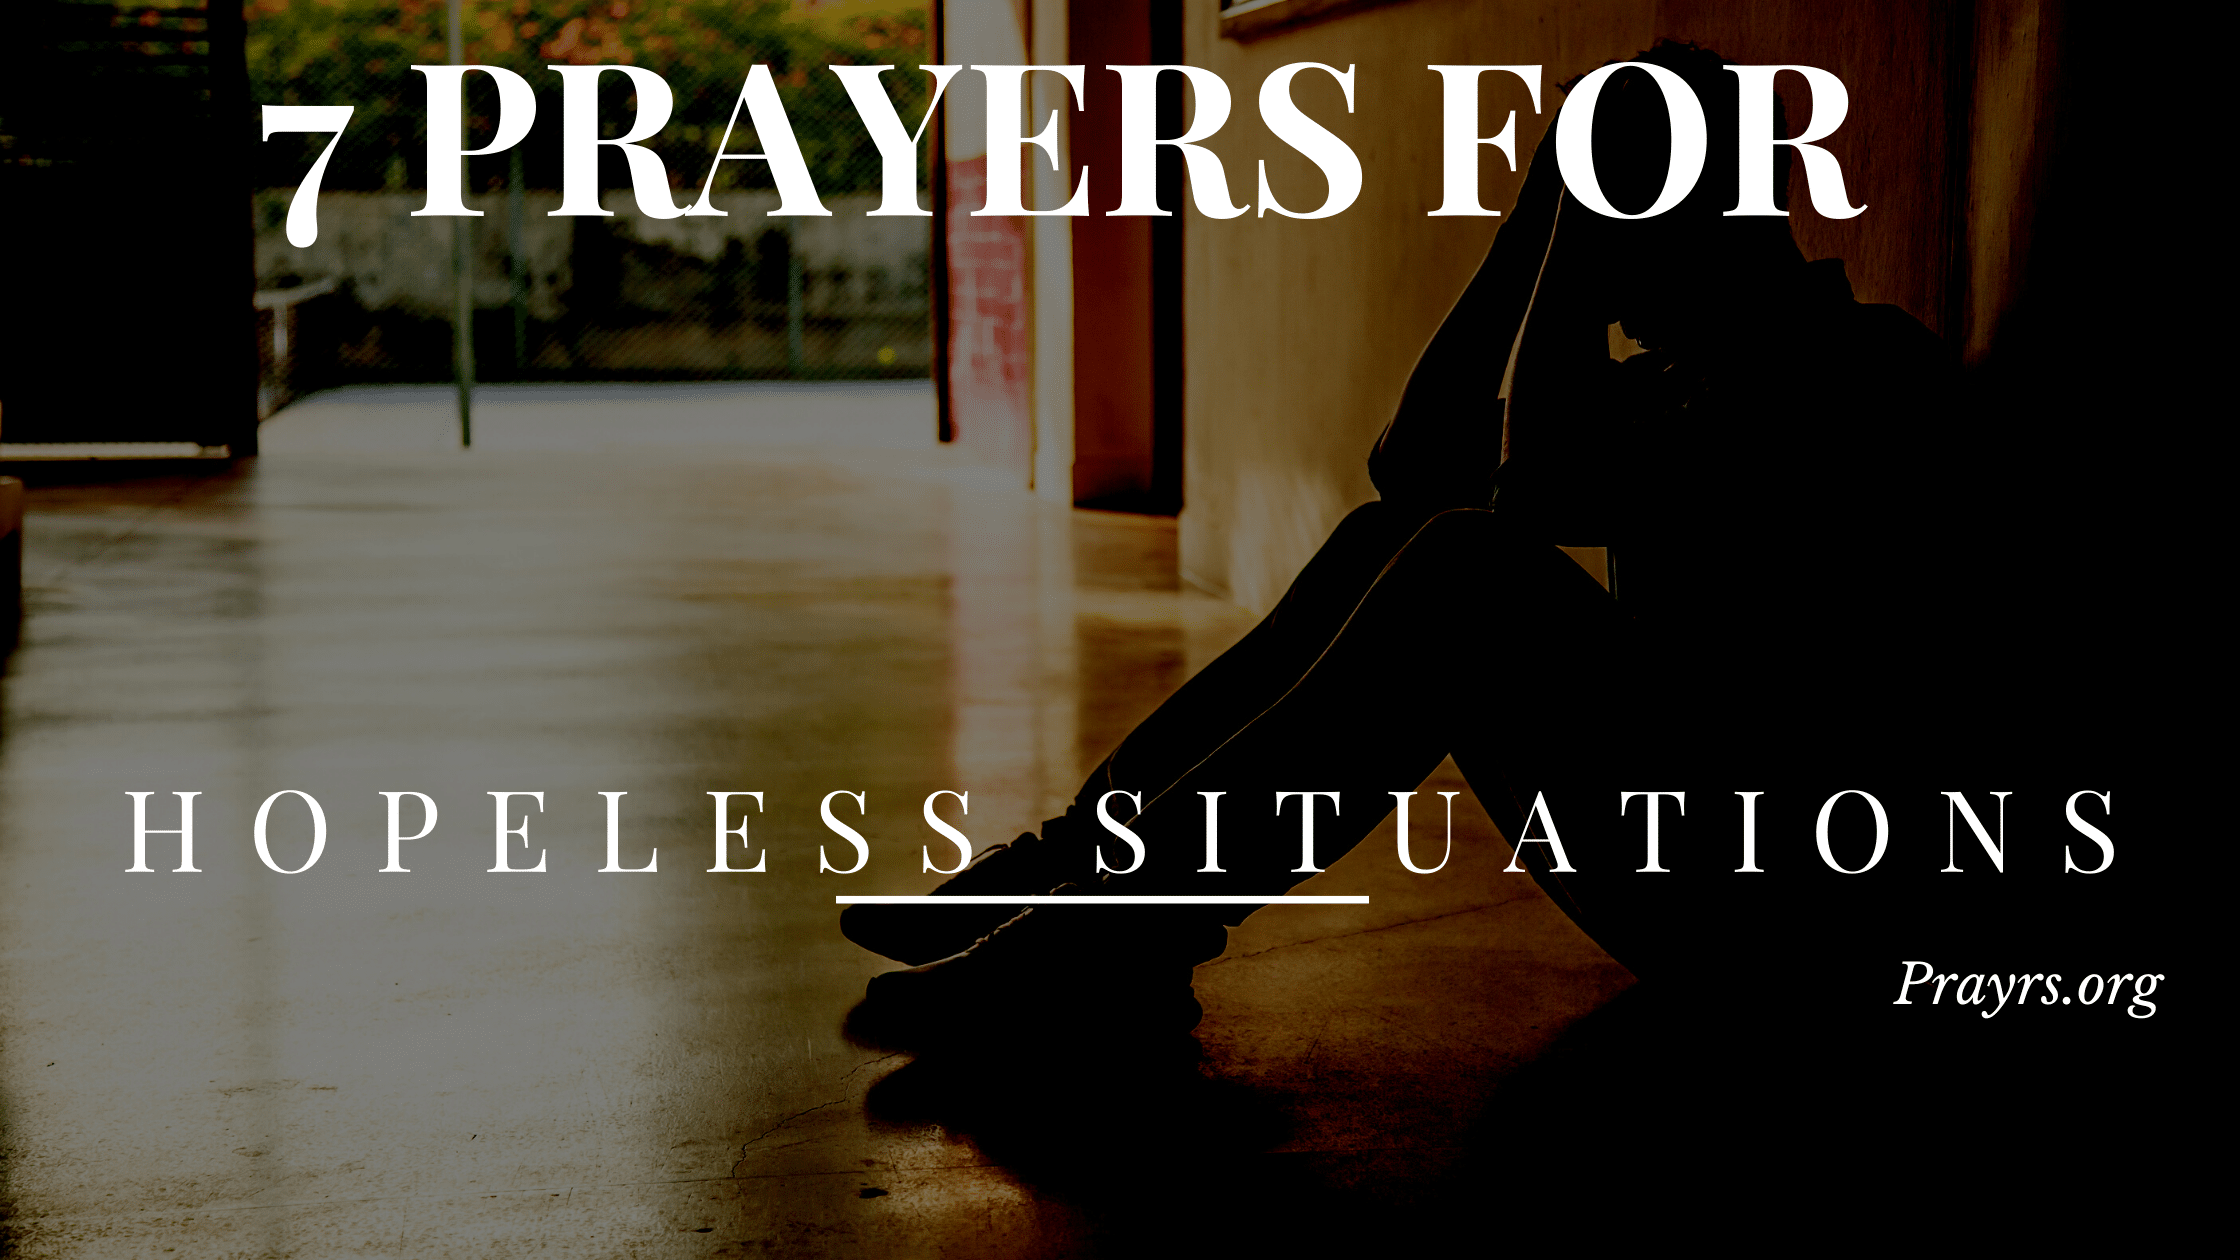 Prayers for Hopeless Situations